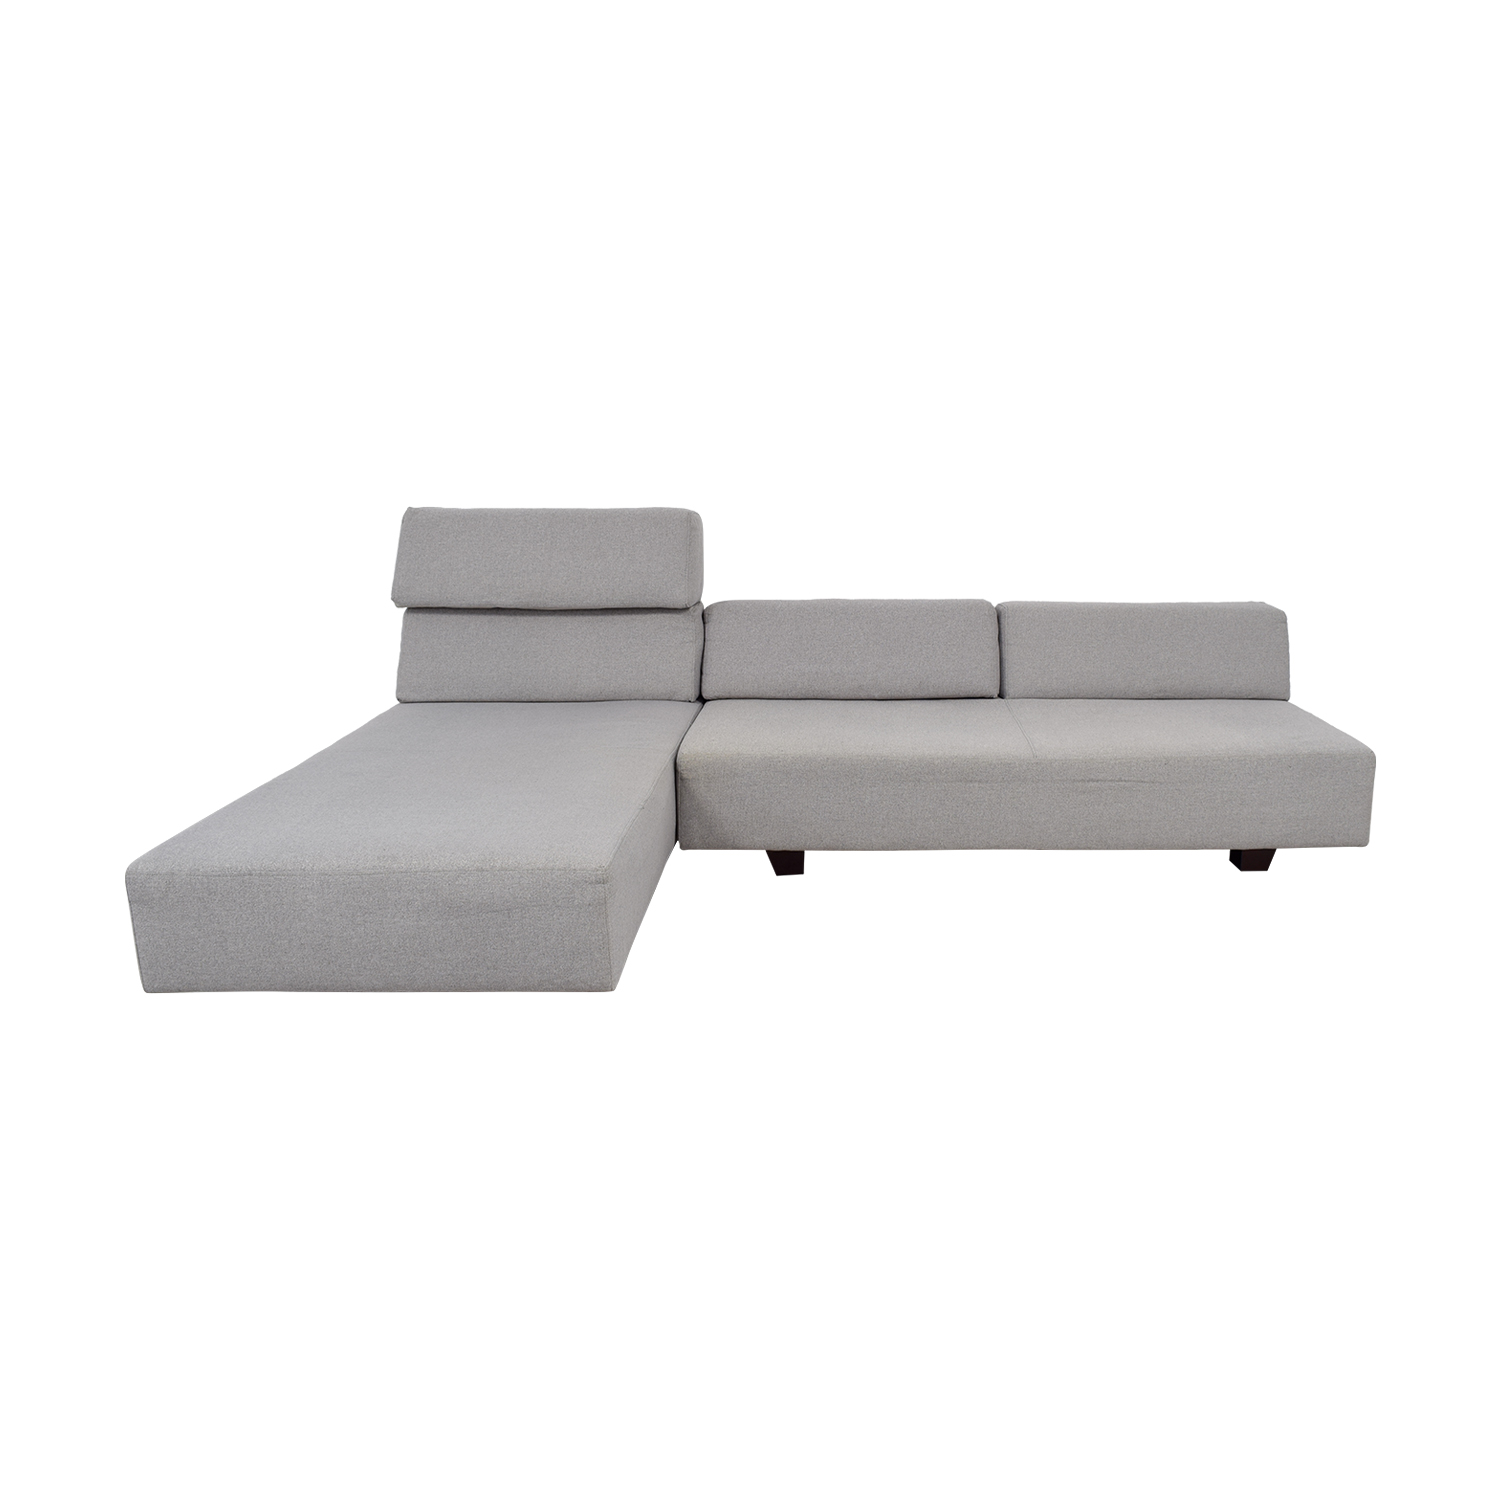 West Elm West Elm Tillary Chenille Tweed Feather Gray Modular Seating Sofa  Second Hand ...